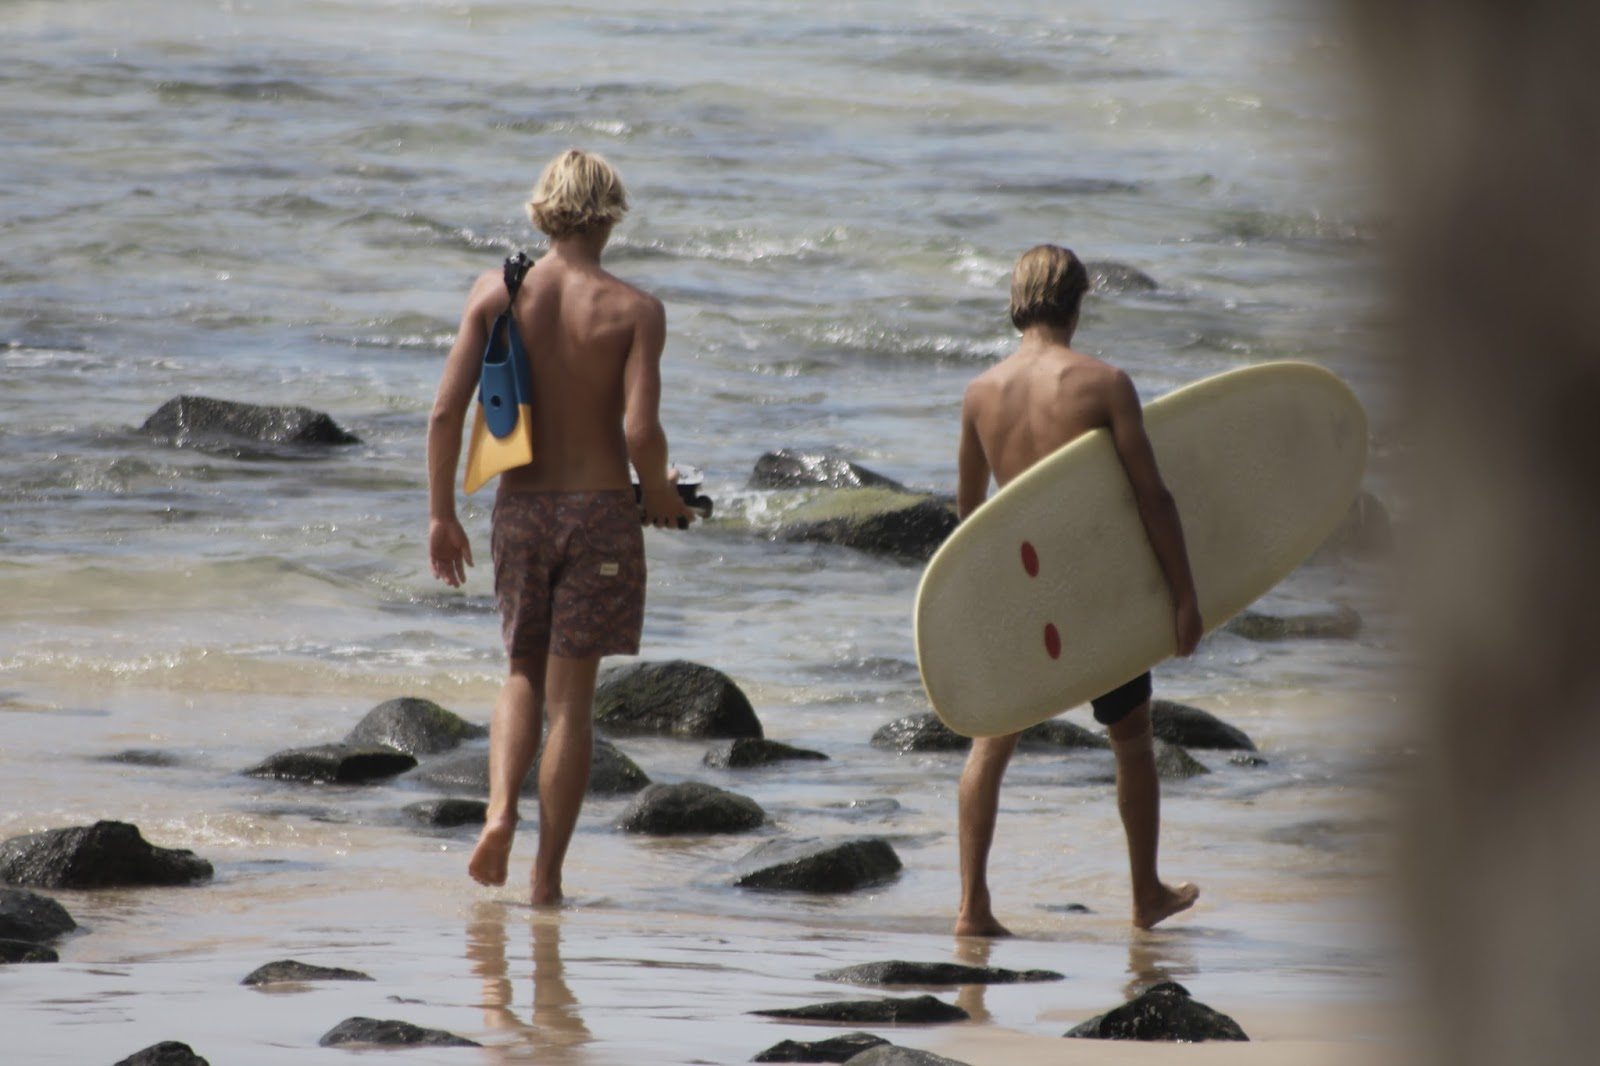 11-03-2016-australia-siebert-surfboards-15